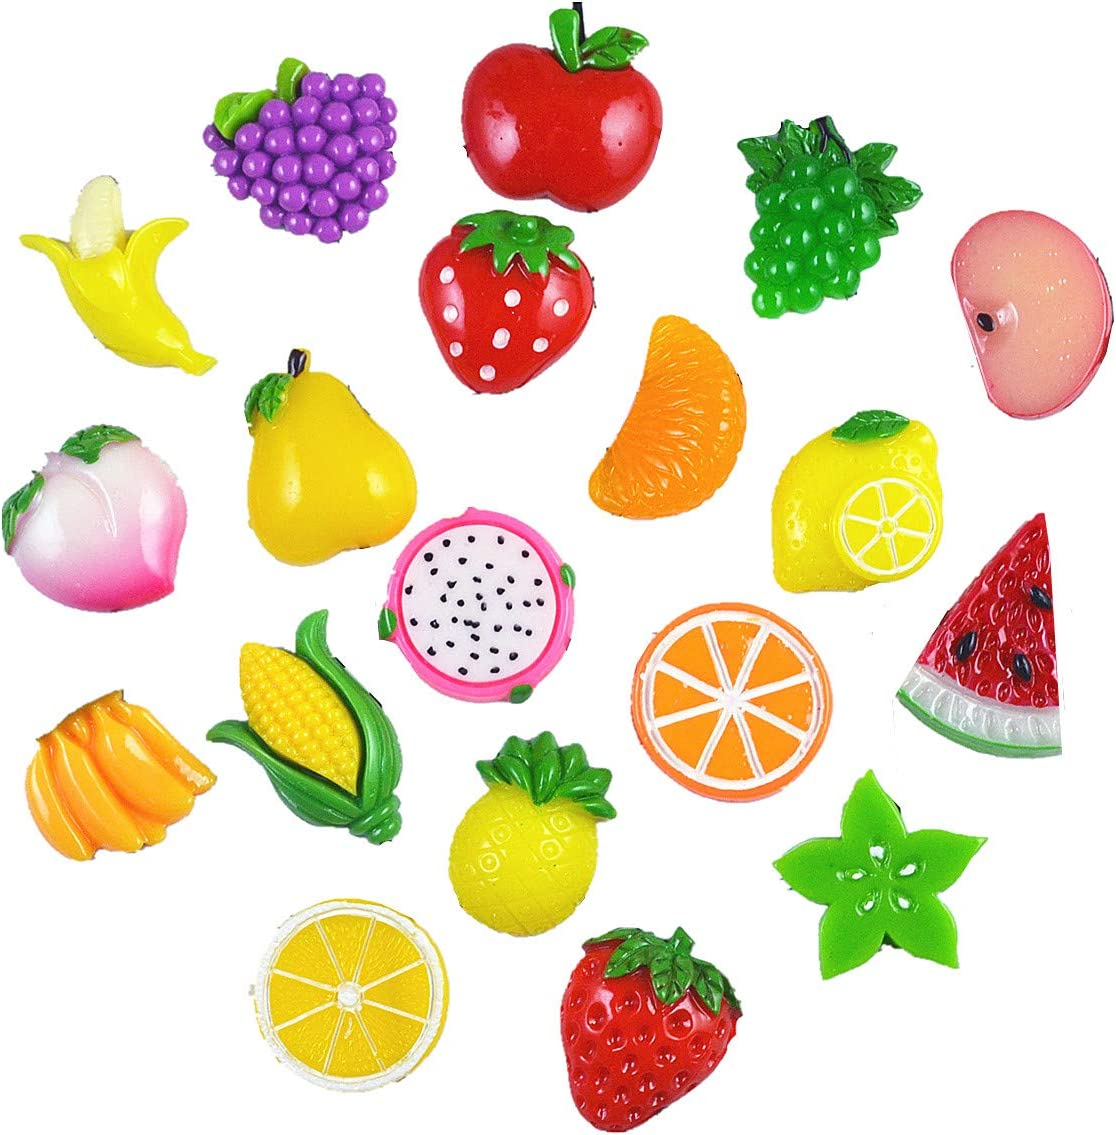 19 Pack Fruit Slime Charms Resin Flatbacks Buttons Polymer Clay Beads for Miniature Fairy Garden Hair Accessories DIY Scrapbooking Phone Case Jewelry Making Home Decoration